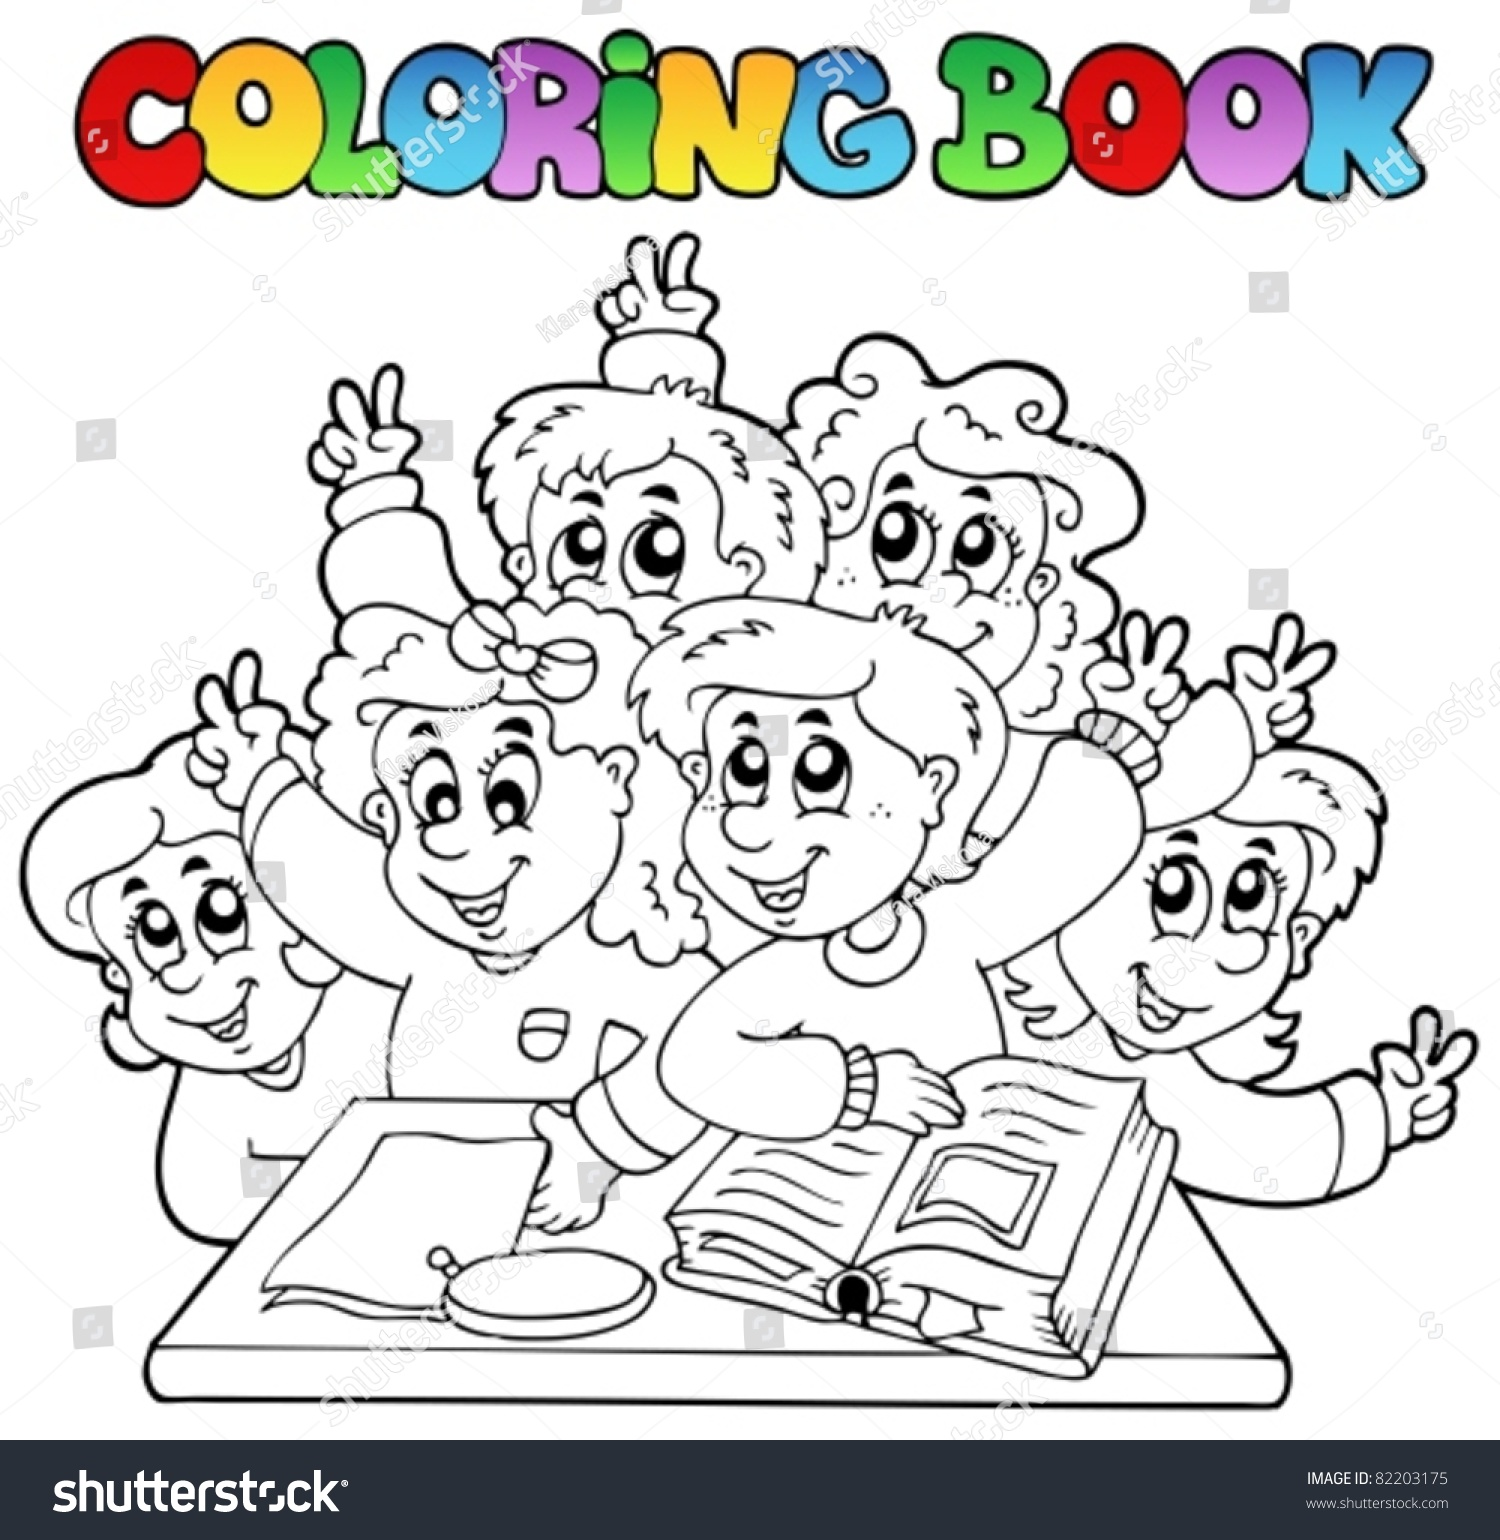 Coloring book school - Coloring Book School Cartoons 3 Vector Illustration